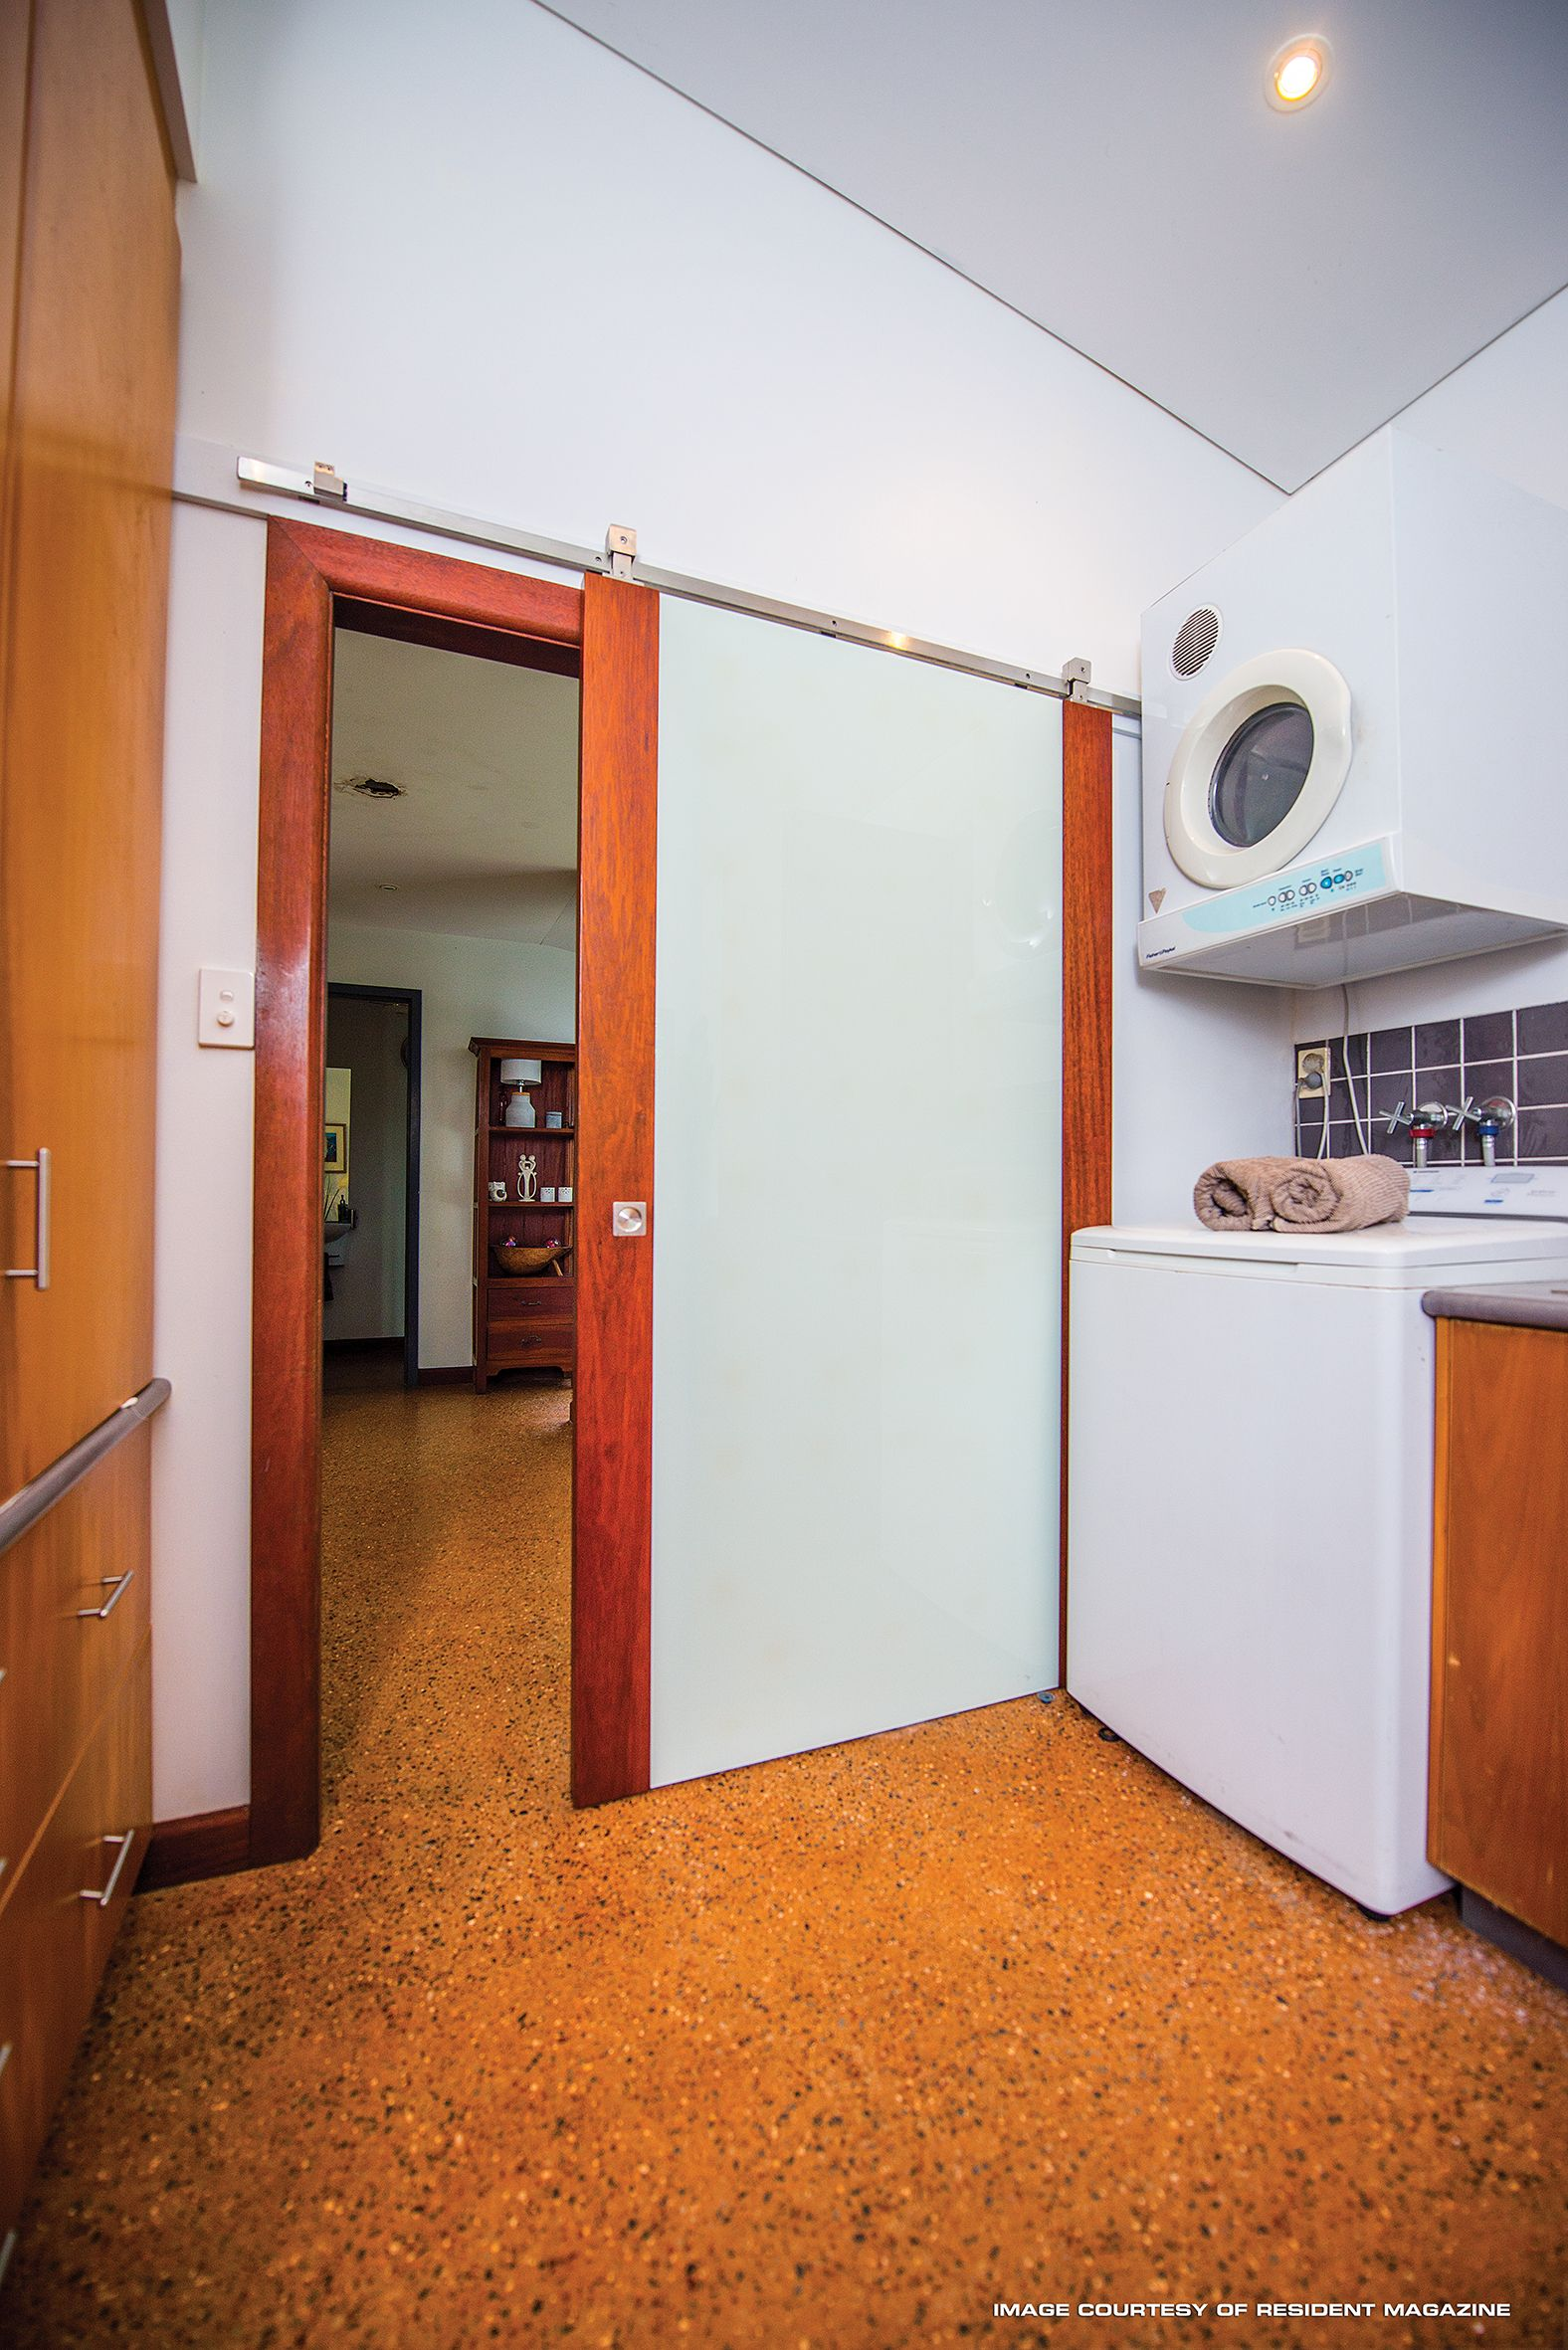 This Image Shows The Top Hung Sliding Door From The Laundry Looking